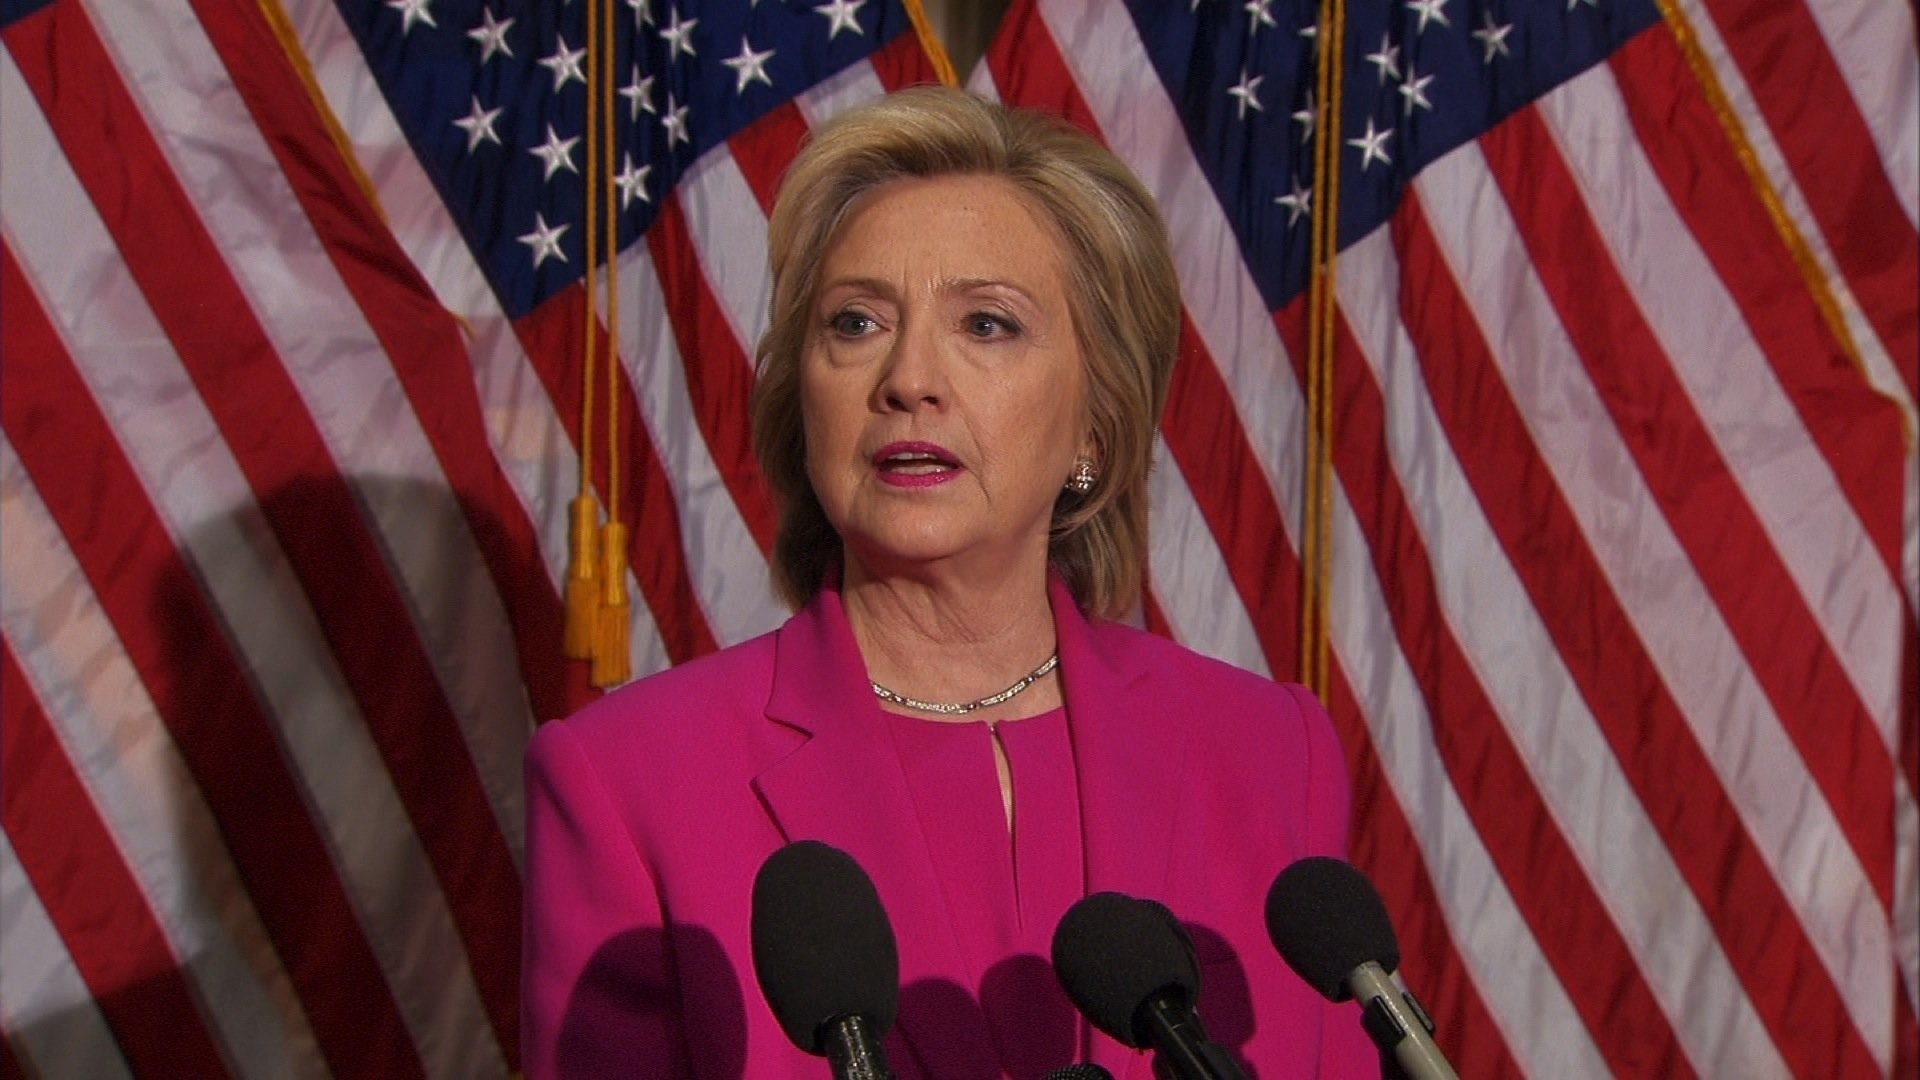 Clinton responds to Judicial Watch questionnaire on email server